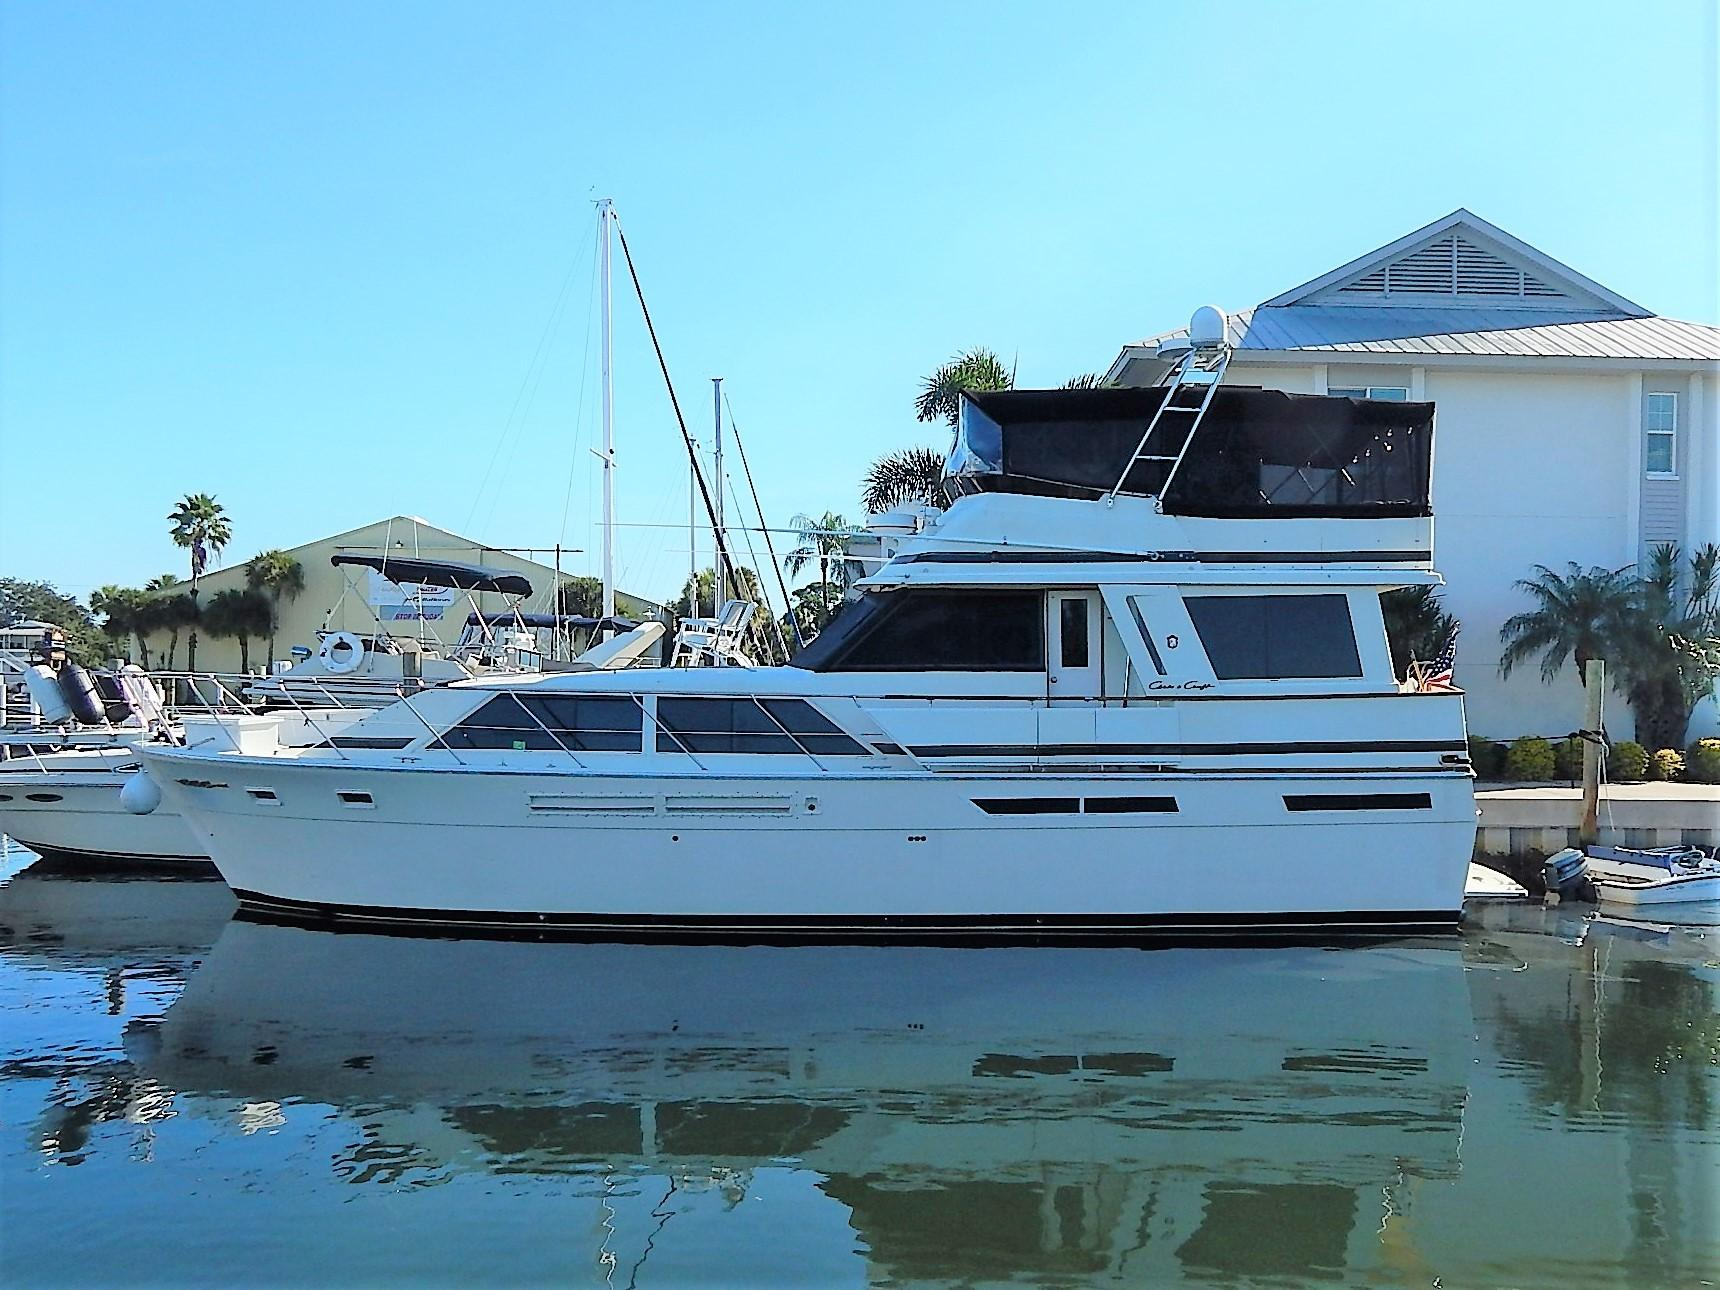 Used Chris-Craft Yachts for Sale - MLS Search